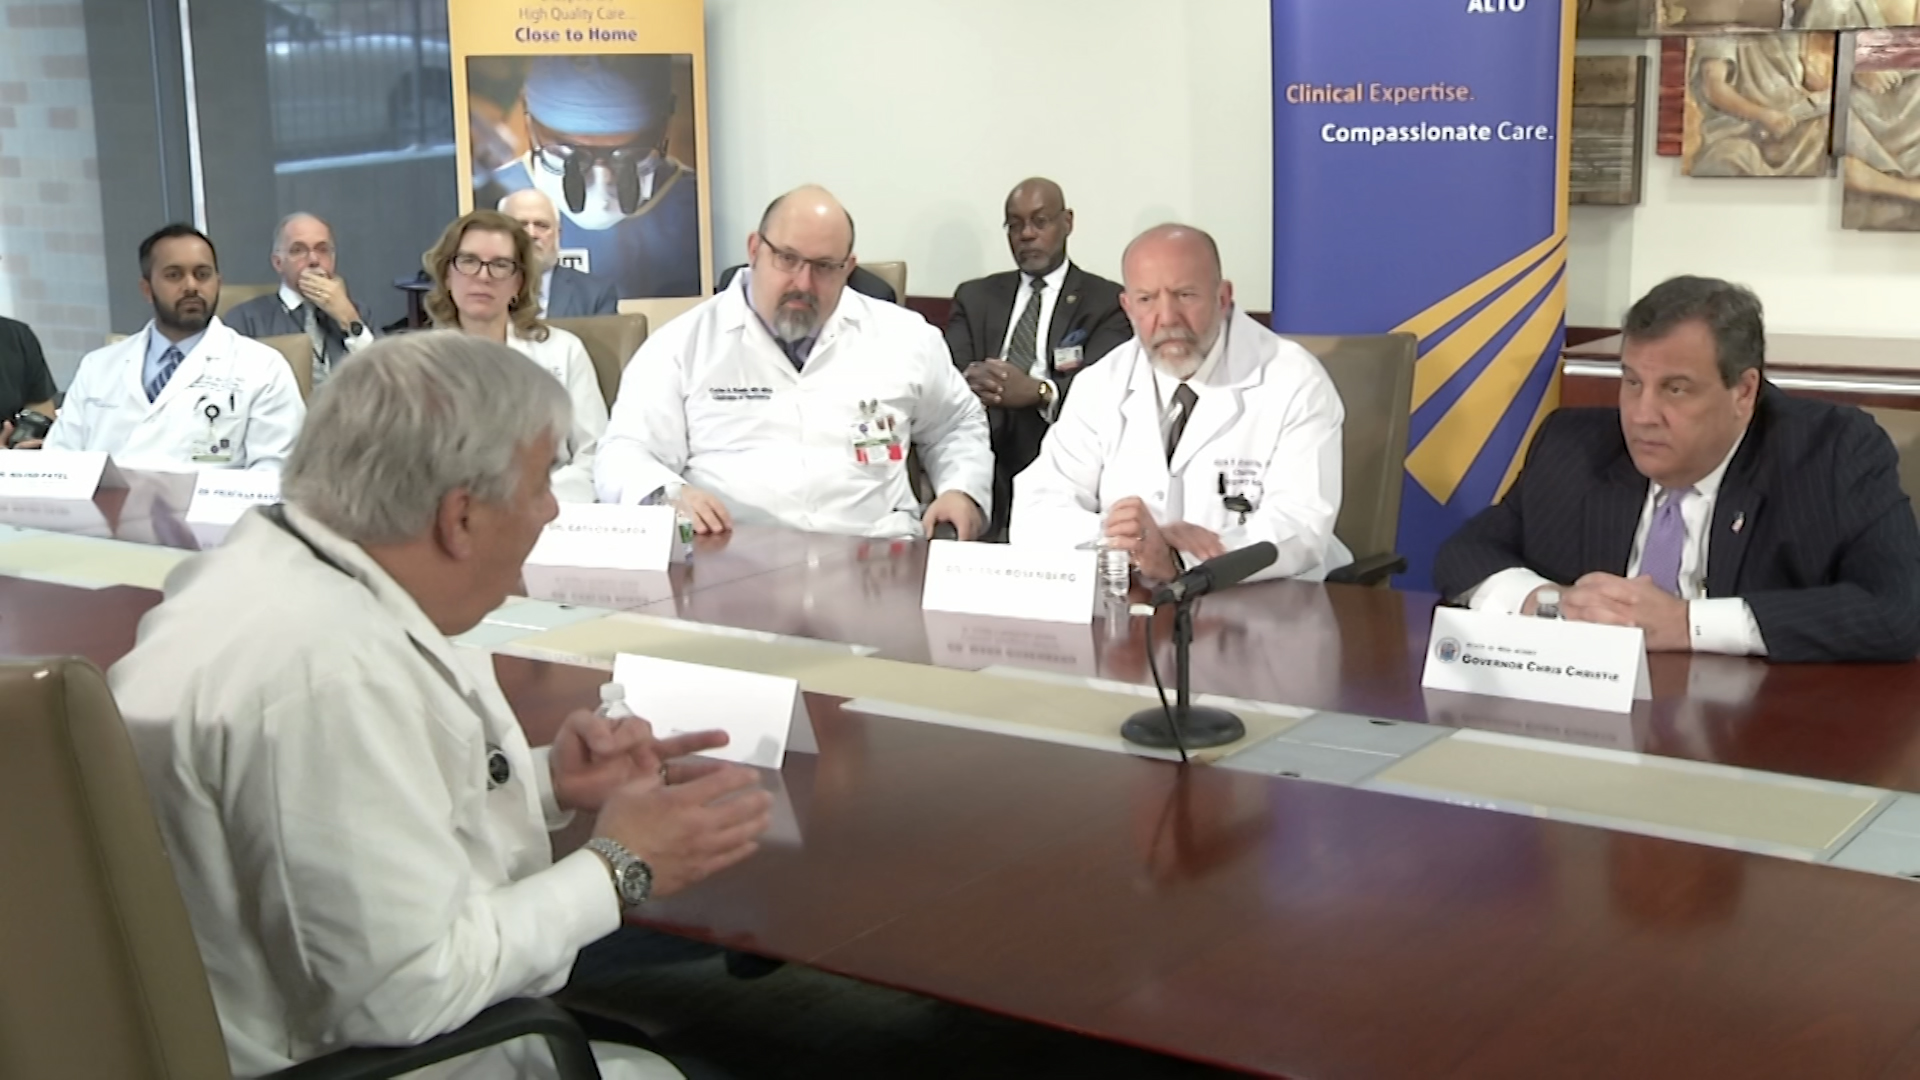 In Paterson, Christie Joins Medical Staff to Talk Opioid Addiction